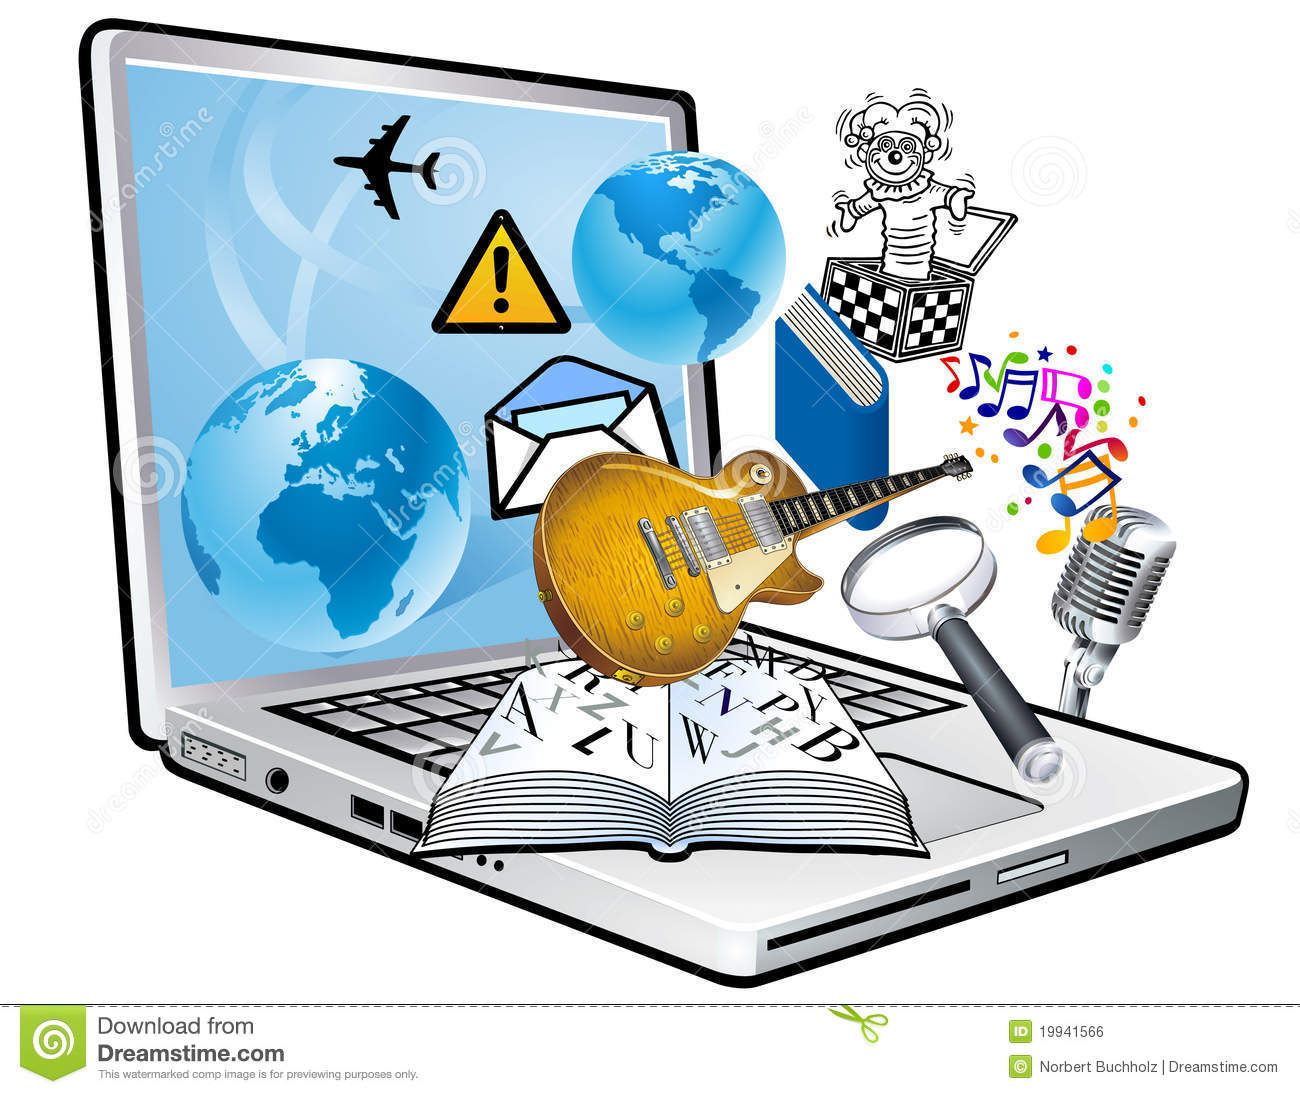 information technology clipart 5 clipart station rh clipartstation com technology clipart images technology clipart free